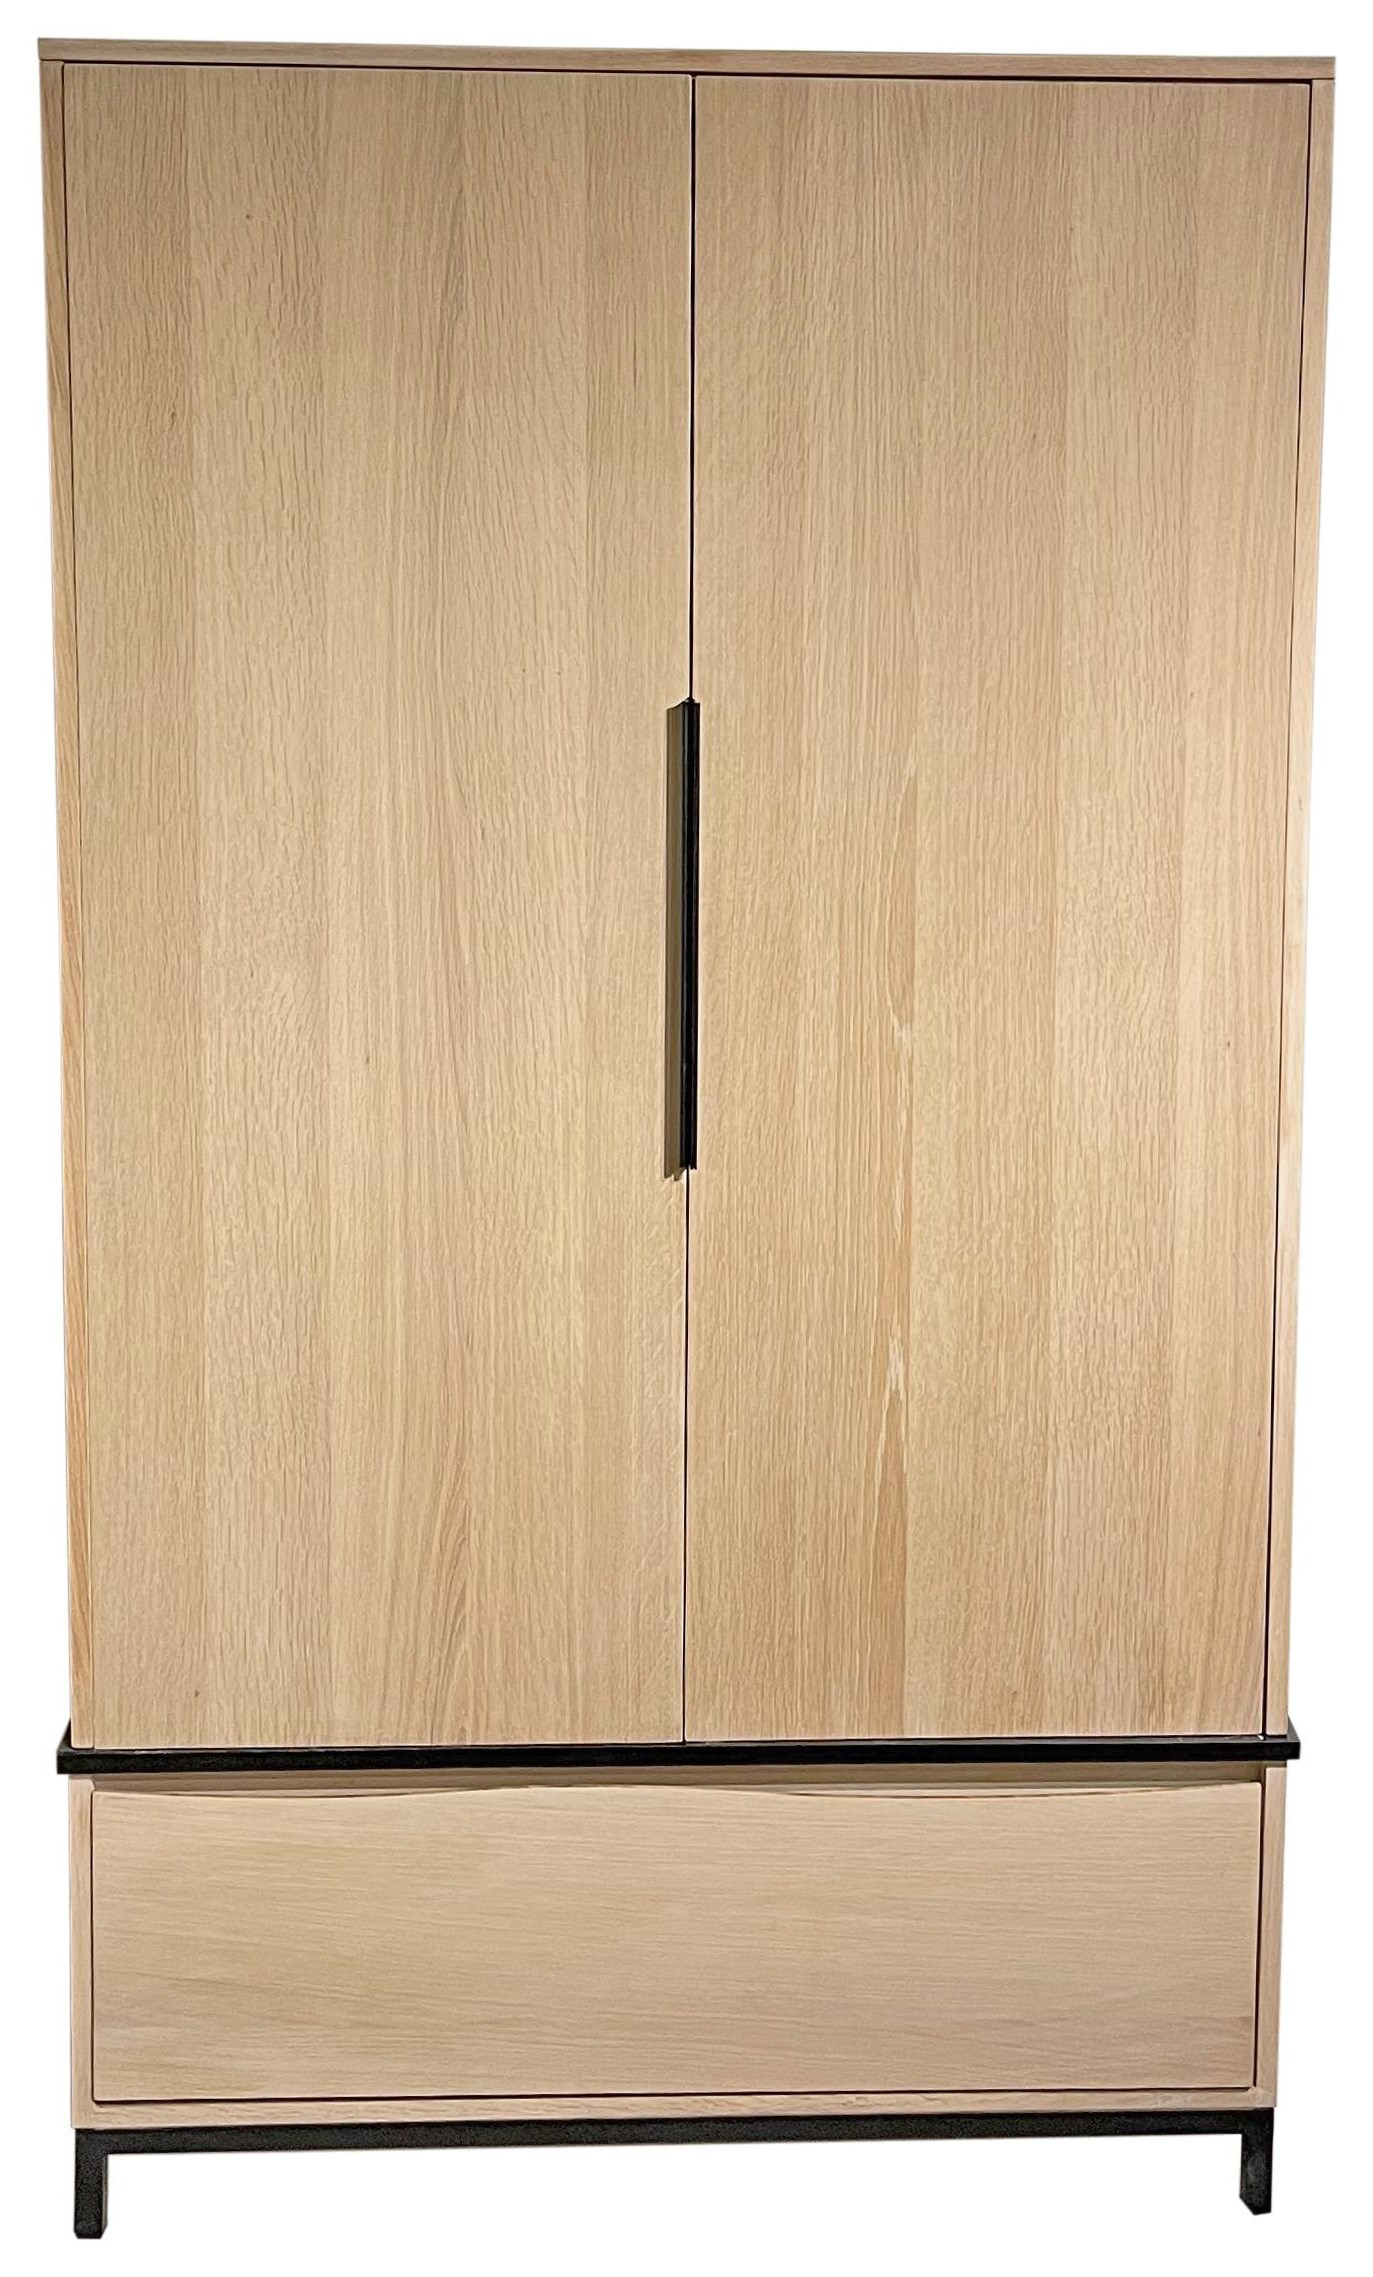 Oak Mill Wardrobe by Global Home at Red Knot